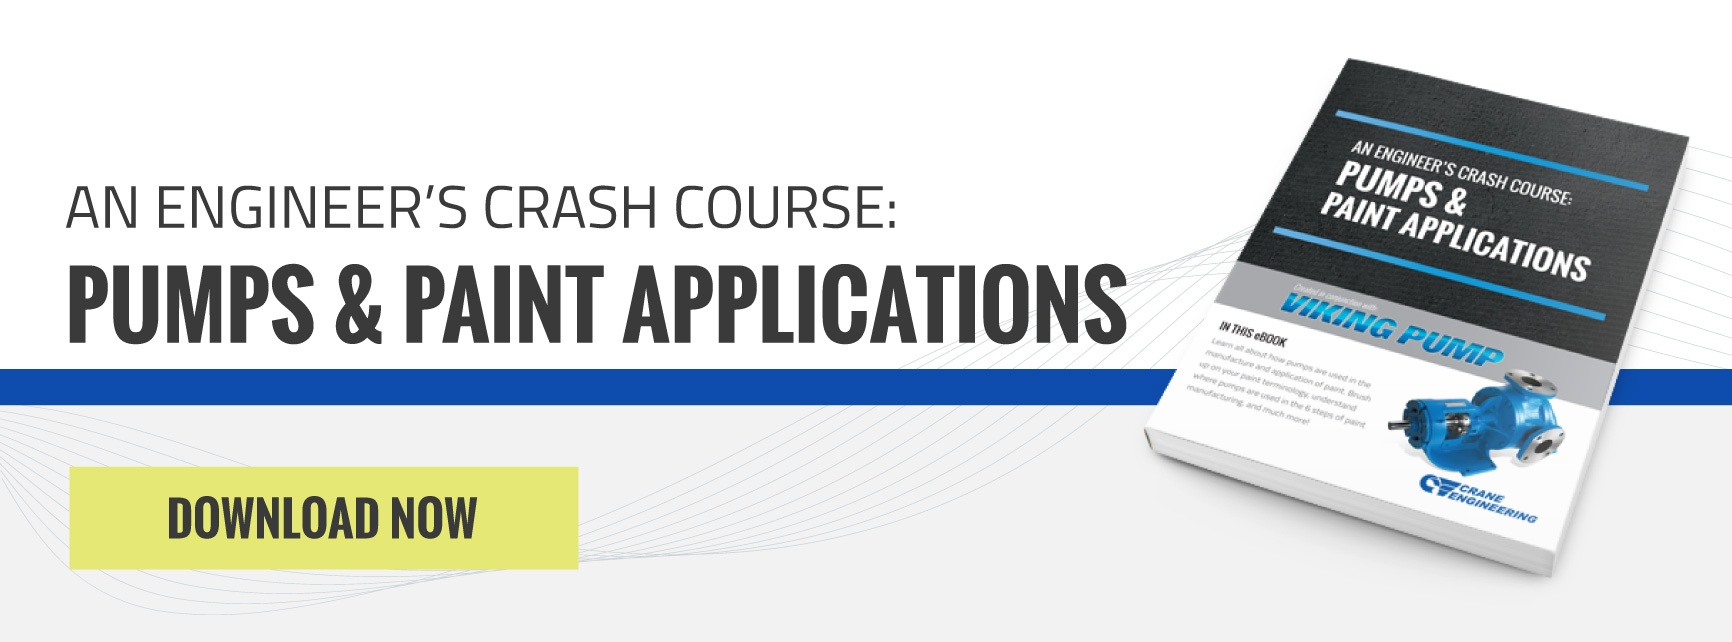 eBook - An Engineer's Crash Course: Pumps and Paint Applications